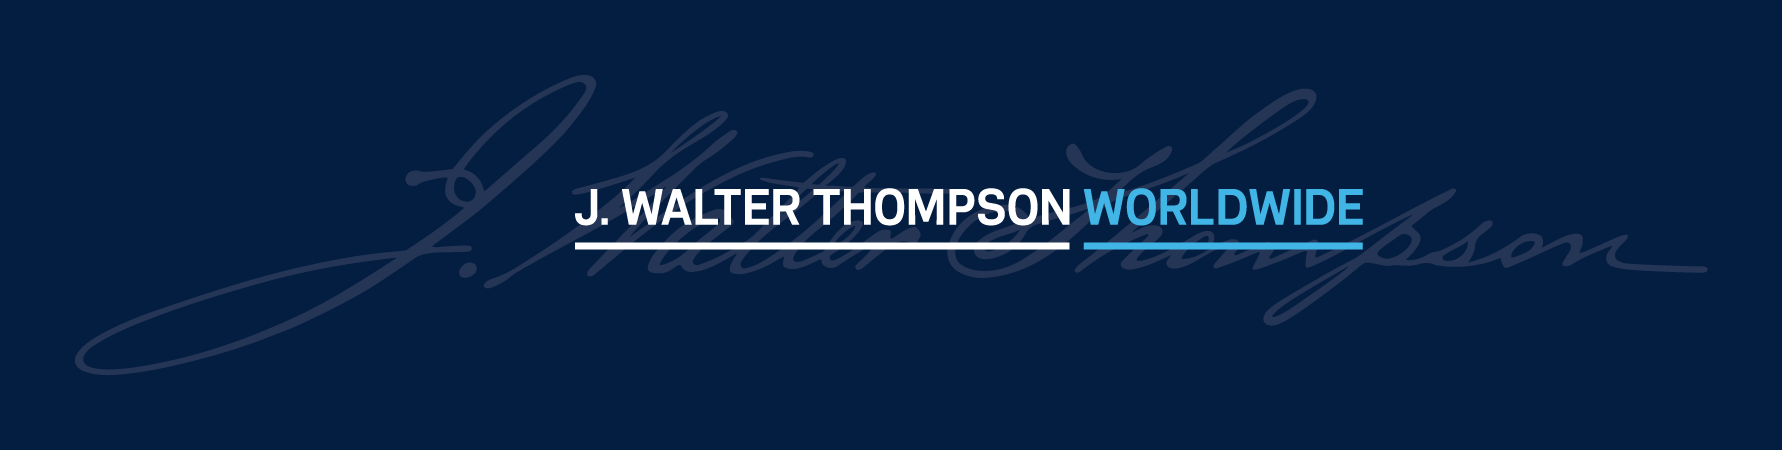 j-walter-thompson-jwt-logo-horizontal-blue.png